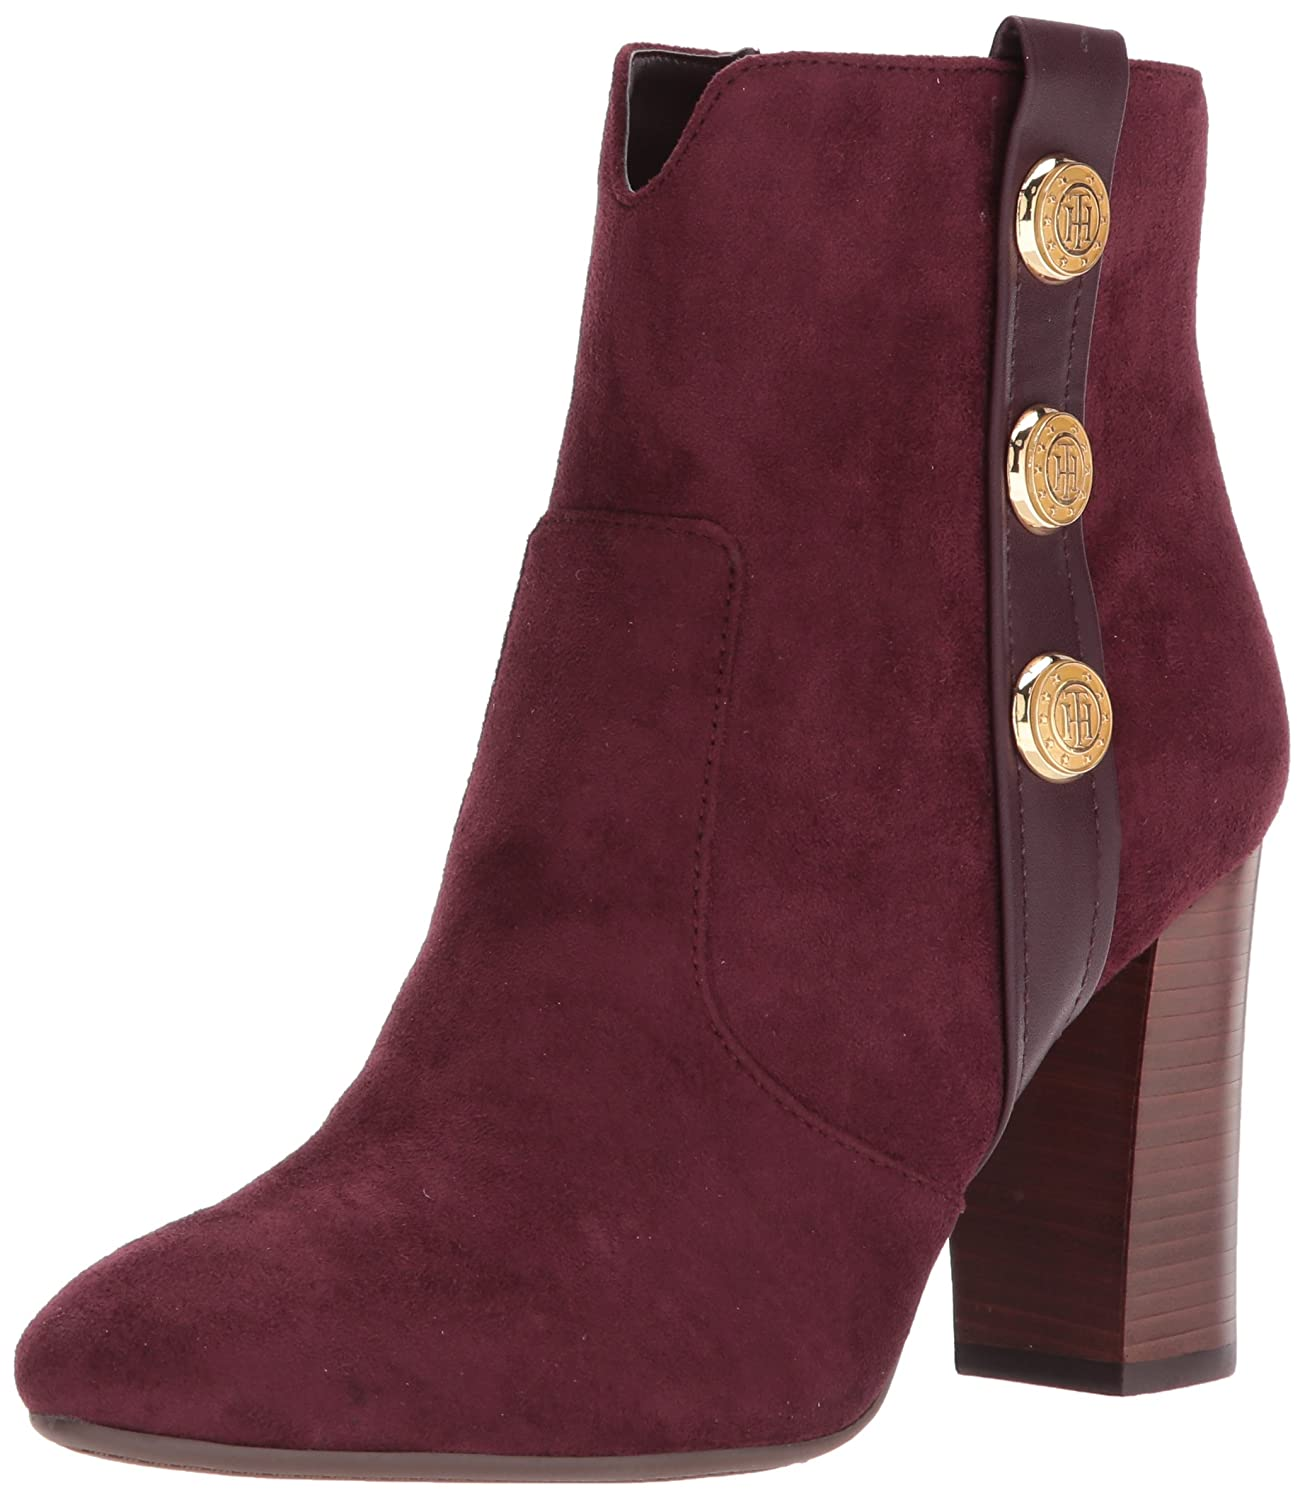 Tommy Hilfiger Women's Domain Ankle Boot B06ZZ7KQZ3 9.5 B(M) US|Burgundy